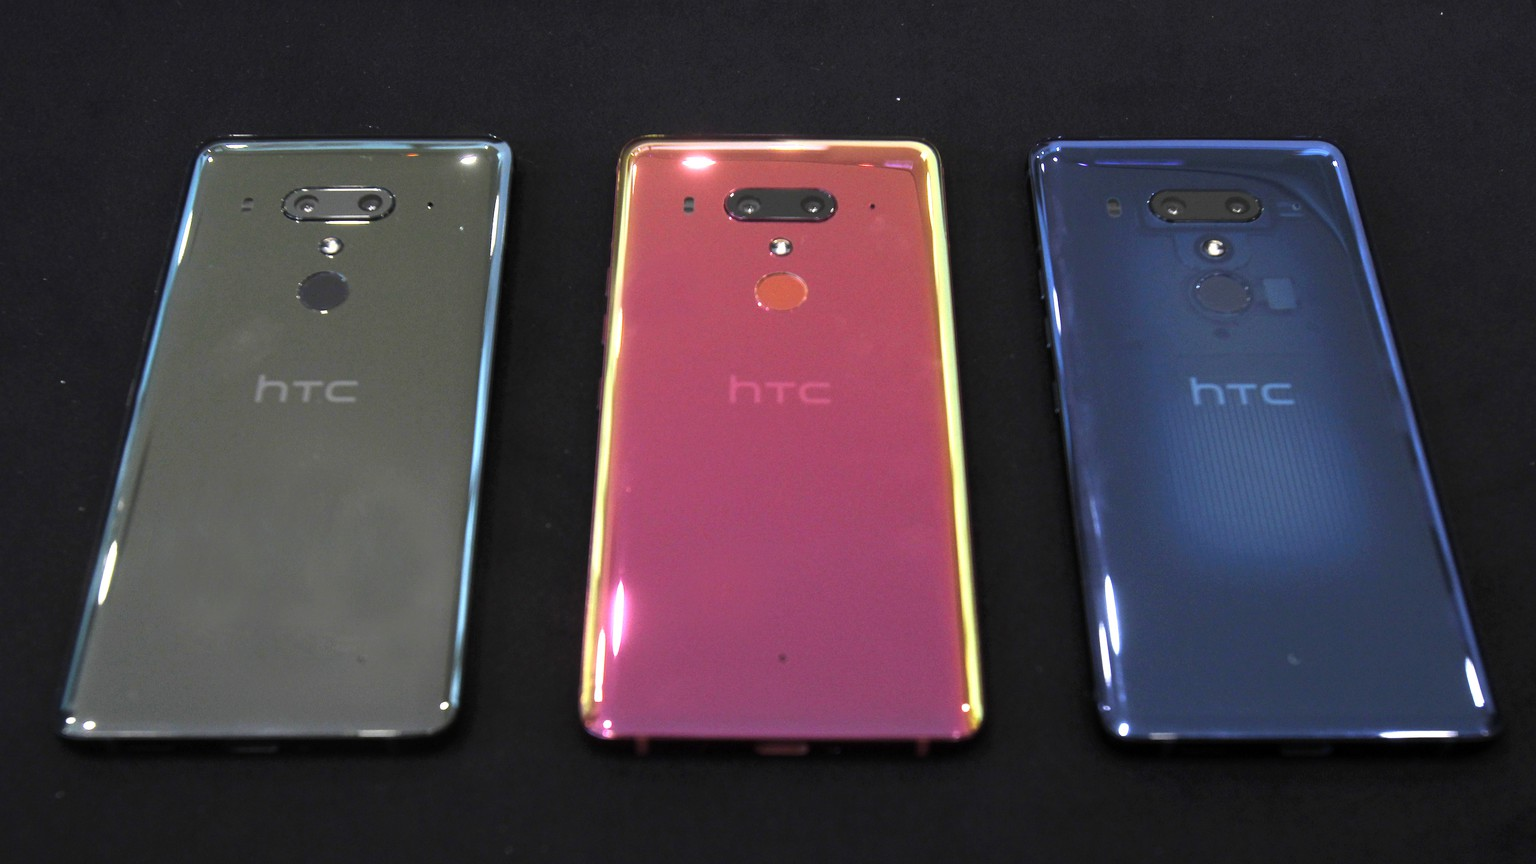 This photo shows three colors of HTC U12+ smart phones during a media event in Taipei, Taiwan, Wednesday, May 23, 2018. The HTC U12+ sell for NT$23,900 (6GB RAM / 64GB ROM, US$797) and NT$24,900 (6GB RAM / 128GB ROM, $830) respectively in Taiwan. (AP Photo/Chiang Ying-ying)